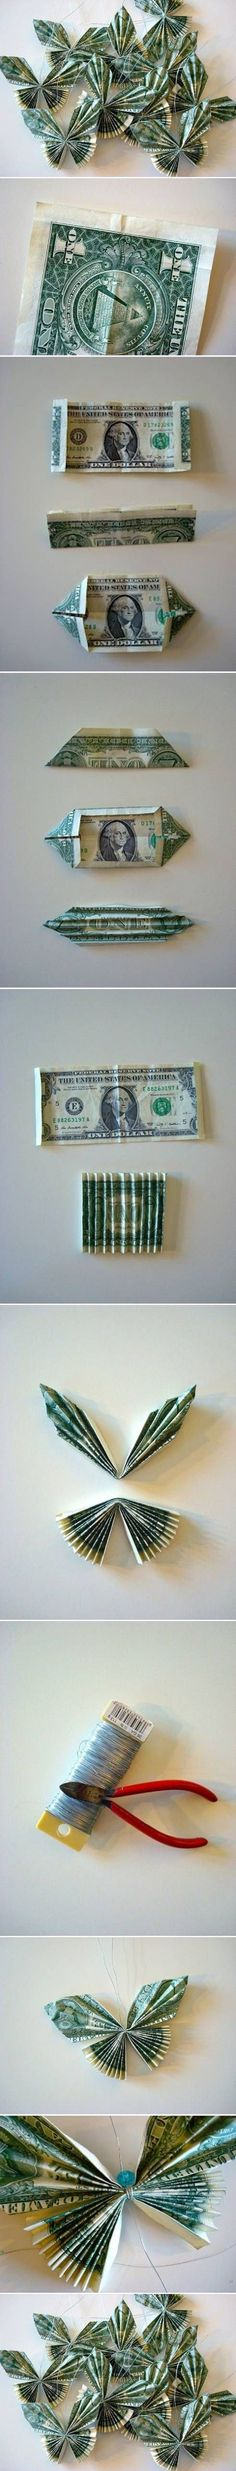 DIY Money Bill Butterflies